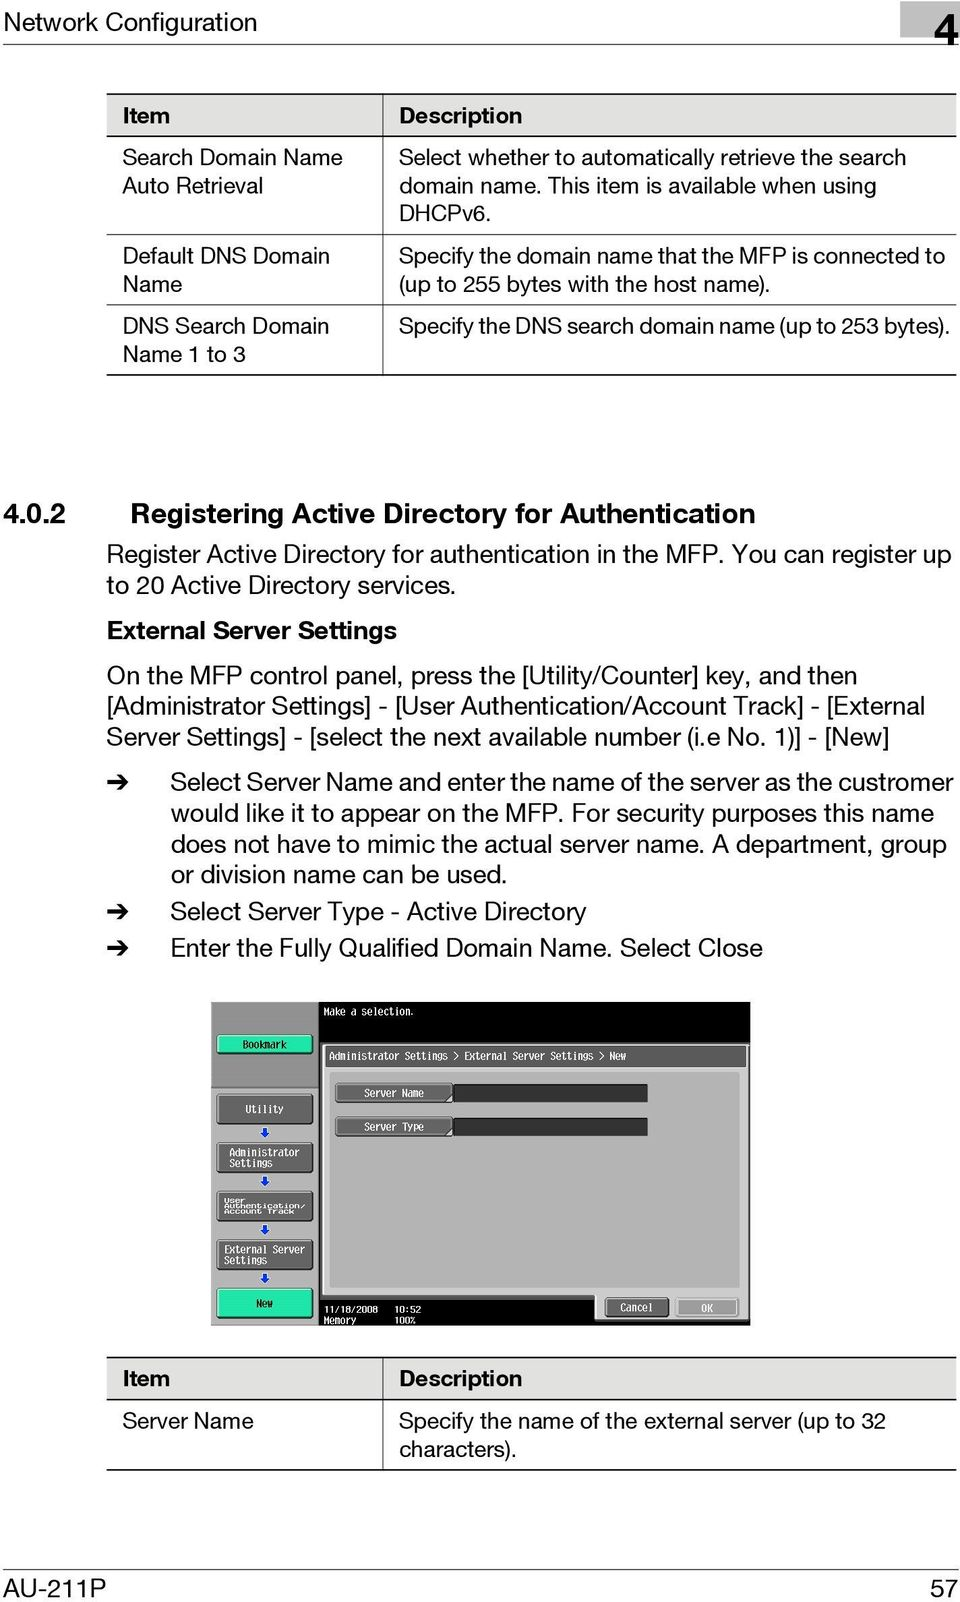 2 Registering Active Directory for Authentication Register Active Directory for authentication in the MFP. You can register up to 20 Active Directory services.